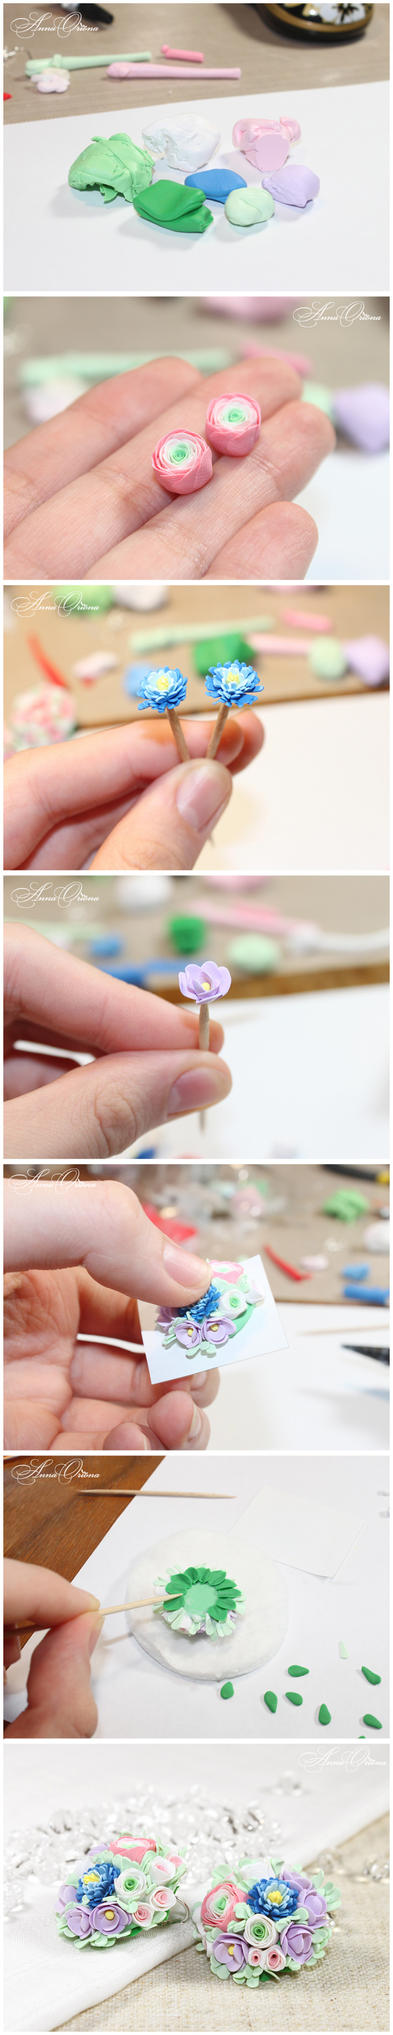 Bouquet of flowers - the process by OrionaJewelry